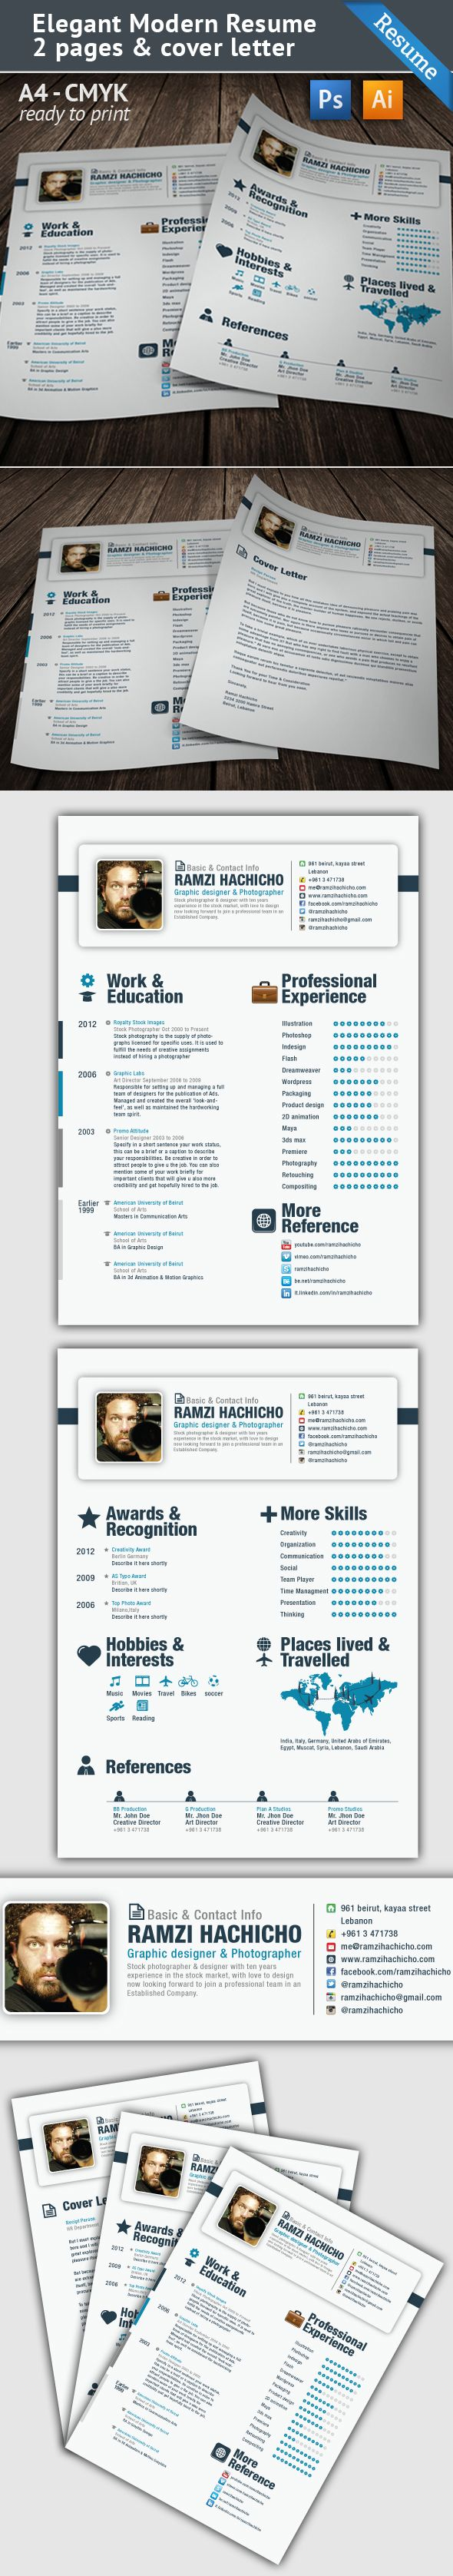 Creative cv Double sided Interesting places traveled